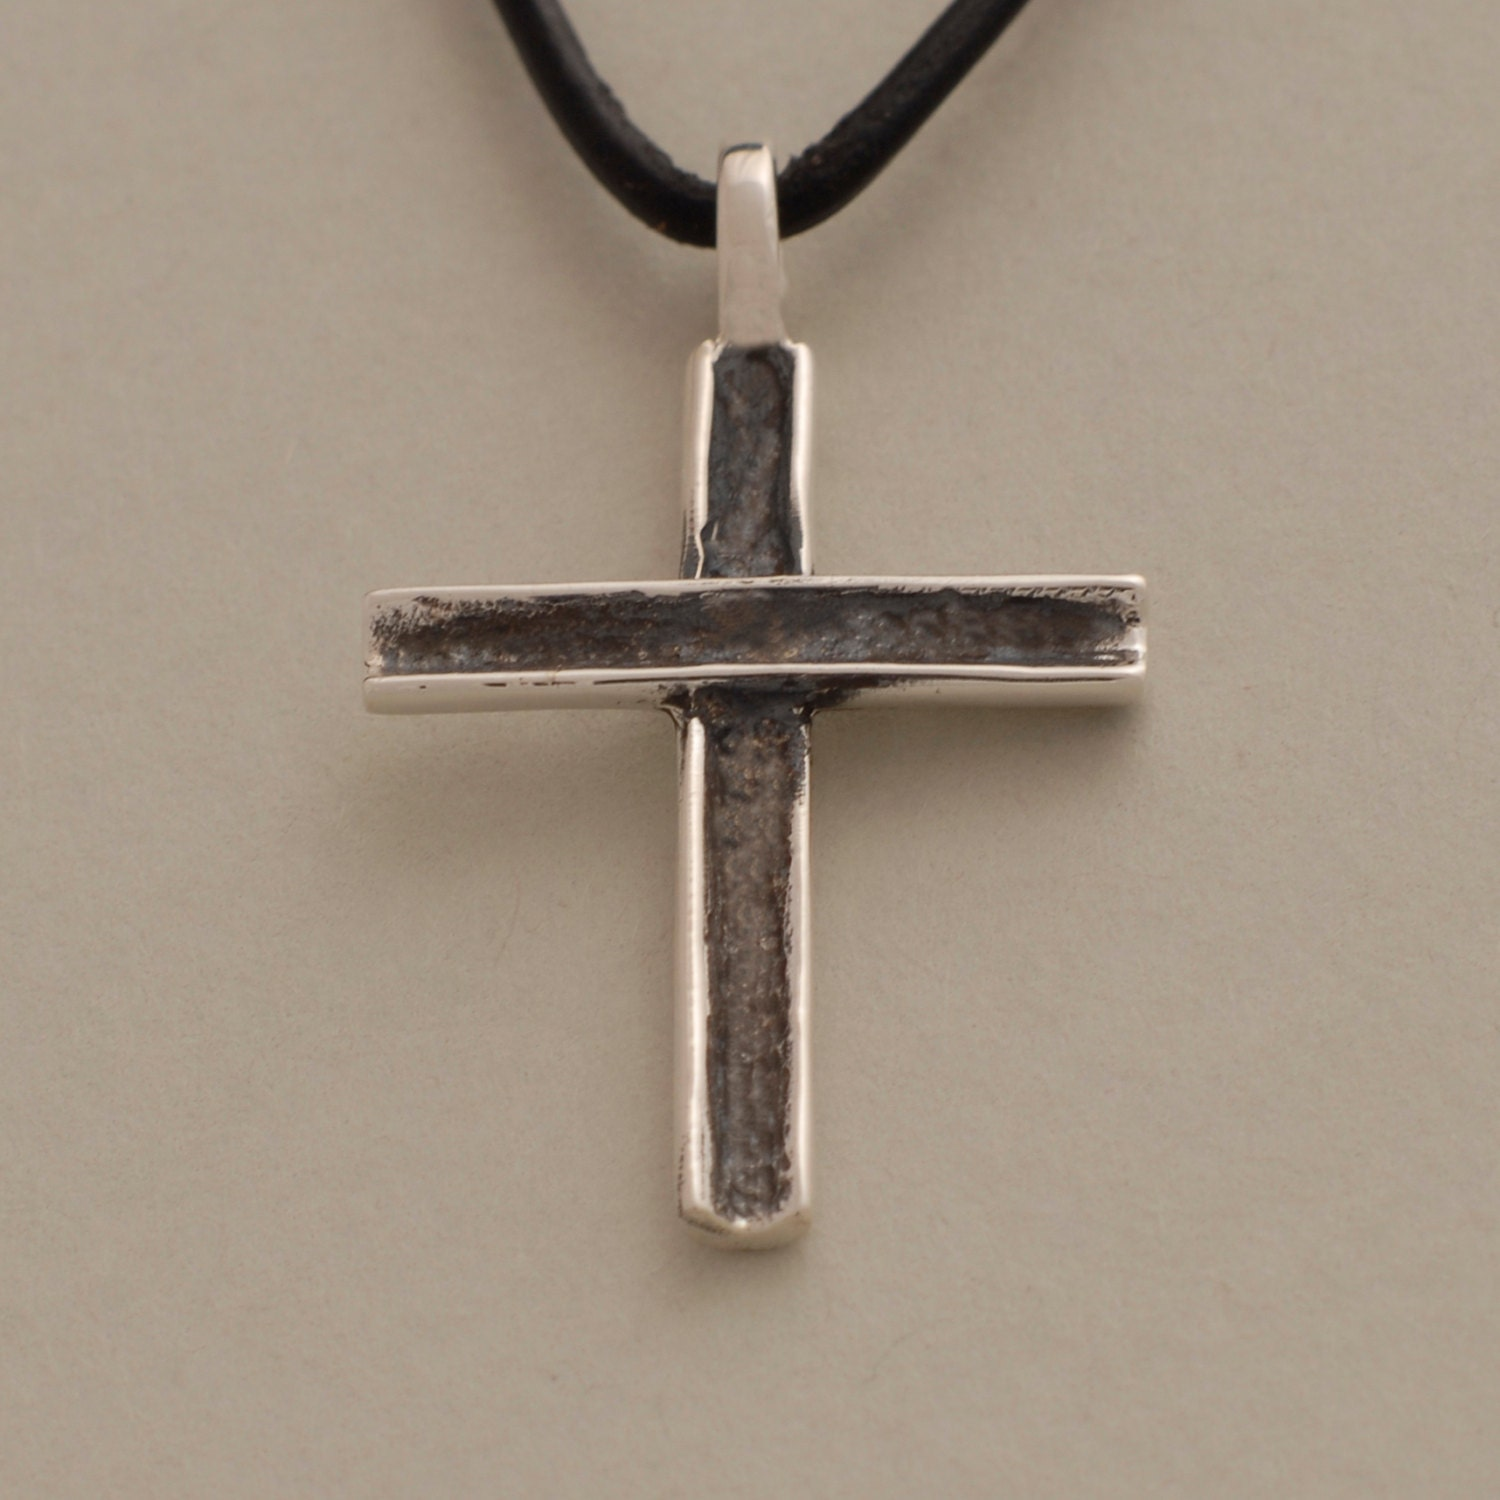 mens cross necklace rustic oxidized silver cross pendant. Black Bedroom Furniture Sets. Home Design Ideas